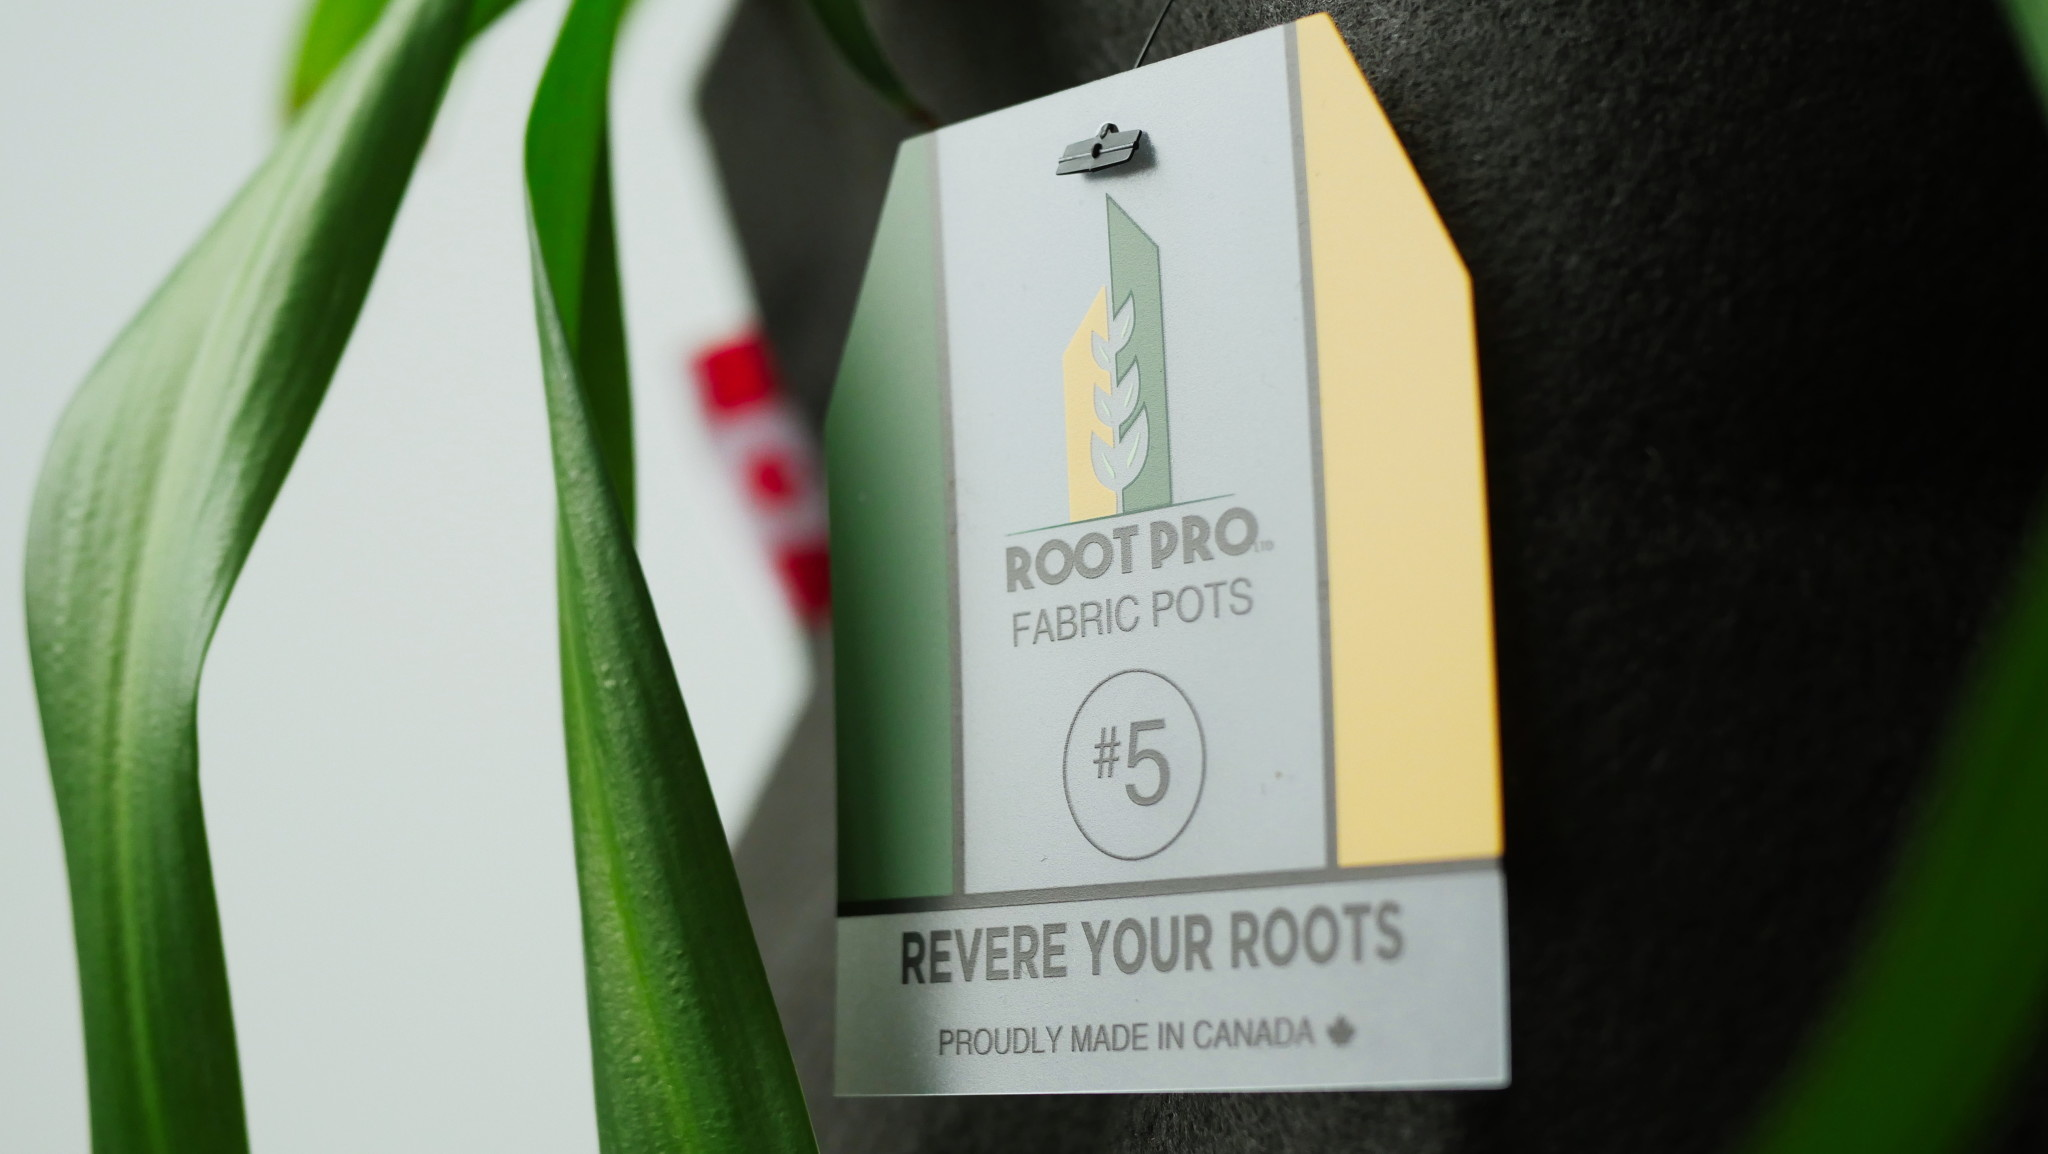 Root Pro Root Pro 5 gallons